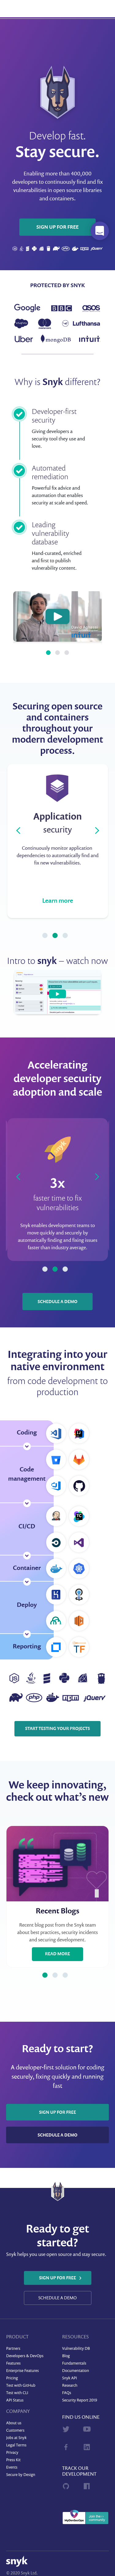 Example of Design for Computers & Electronics, Software, Mobile Landing Page by snyk.io | Mobile Landing Page Design